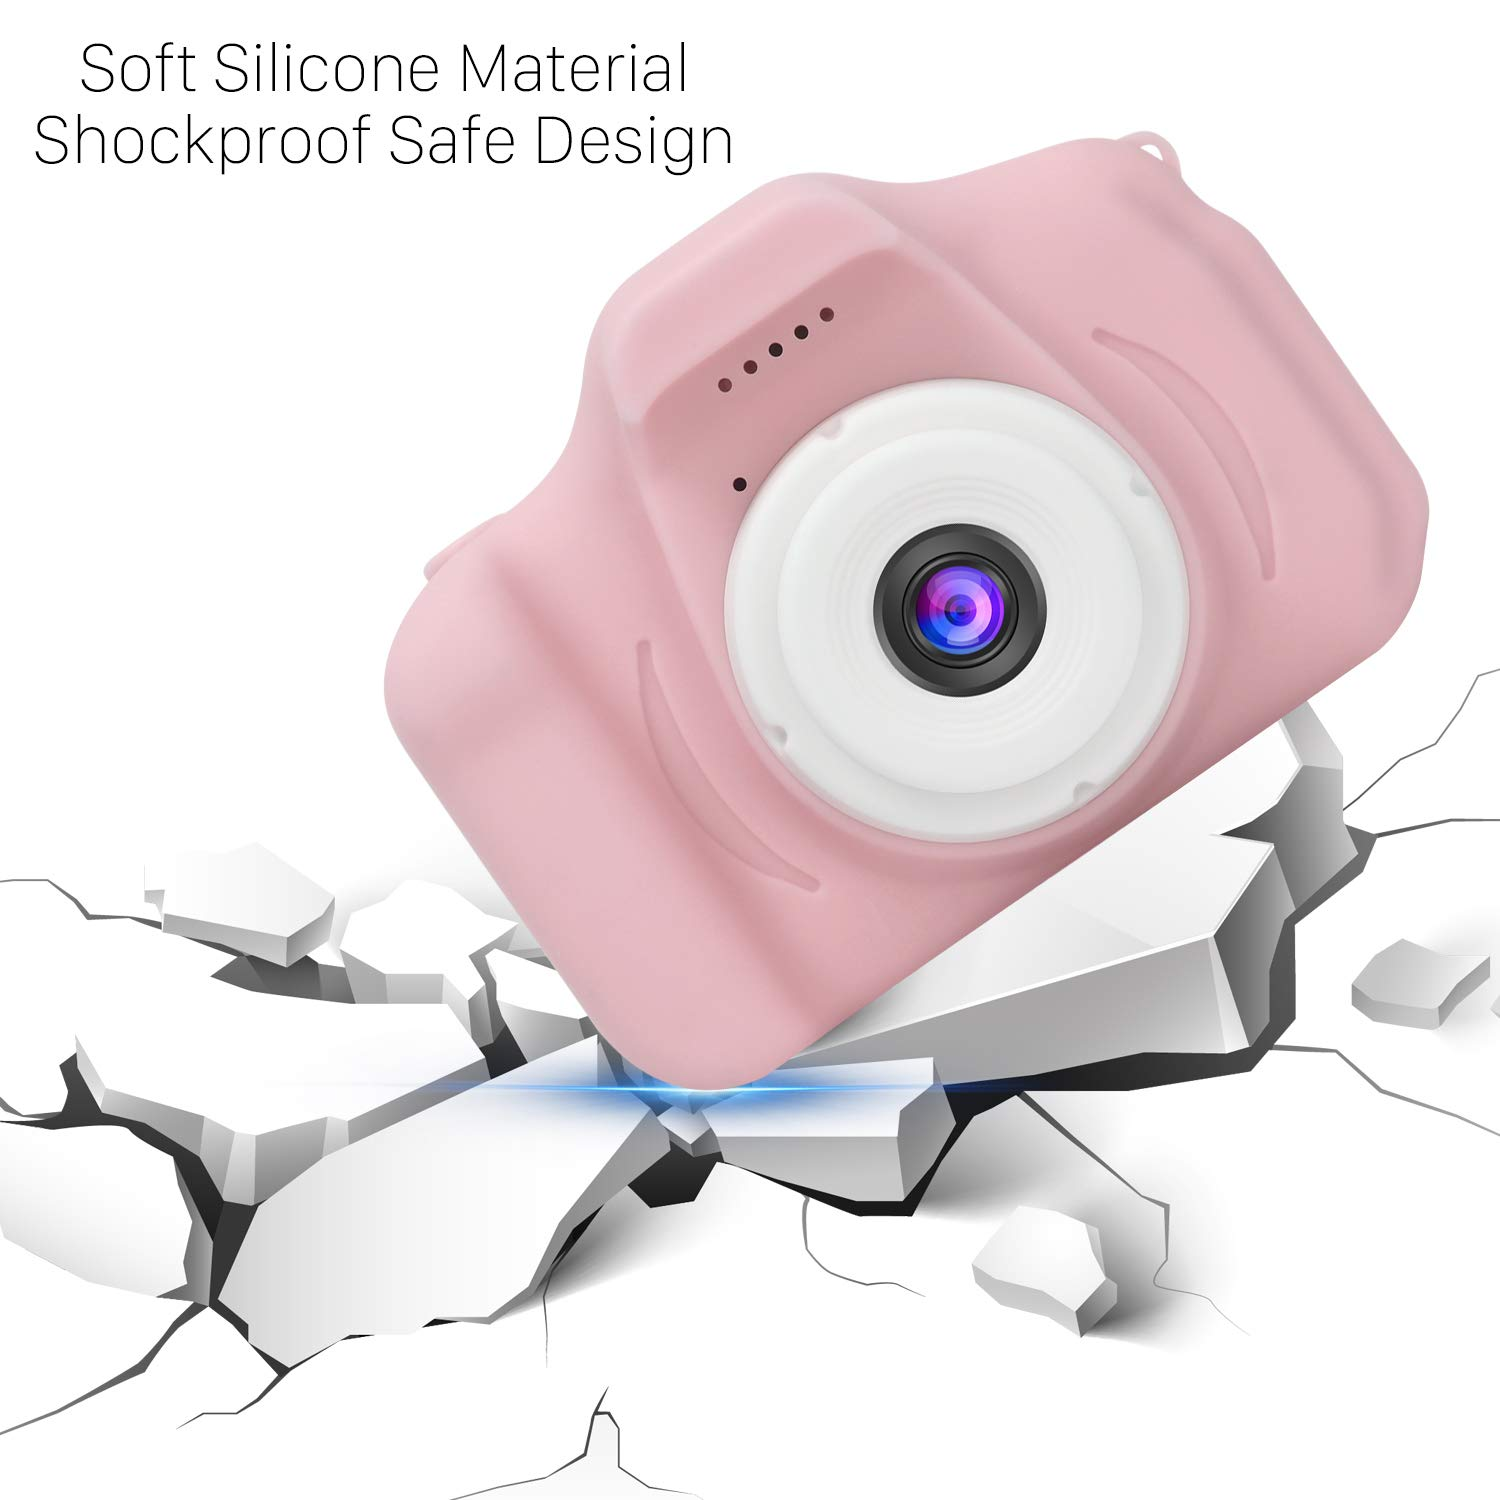 DDGG Kids Digital Camera for Girls Age 3-10,Toddler Cameras Child Camcorder Mini Cartoon Pink Rechargeable Camera Shockproof 8MP HD Children Video Record Camera (16GB Memory Card Included) by DDGG (Image #7)